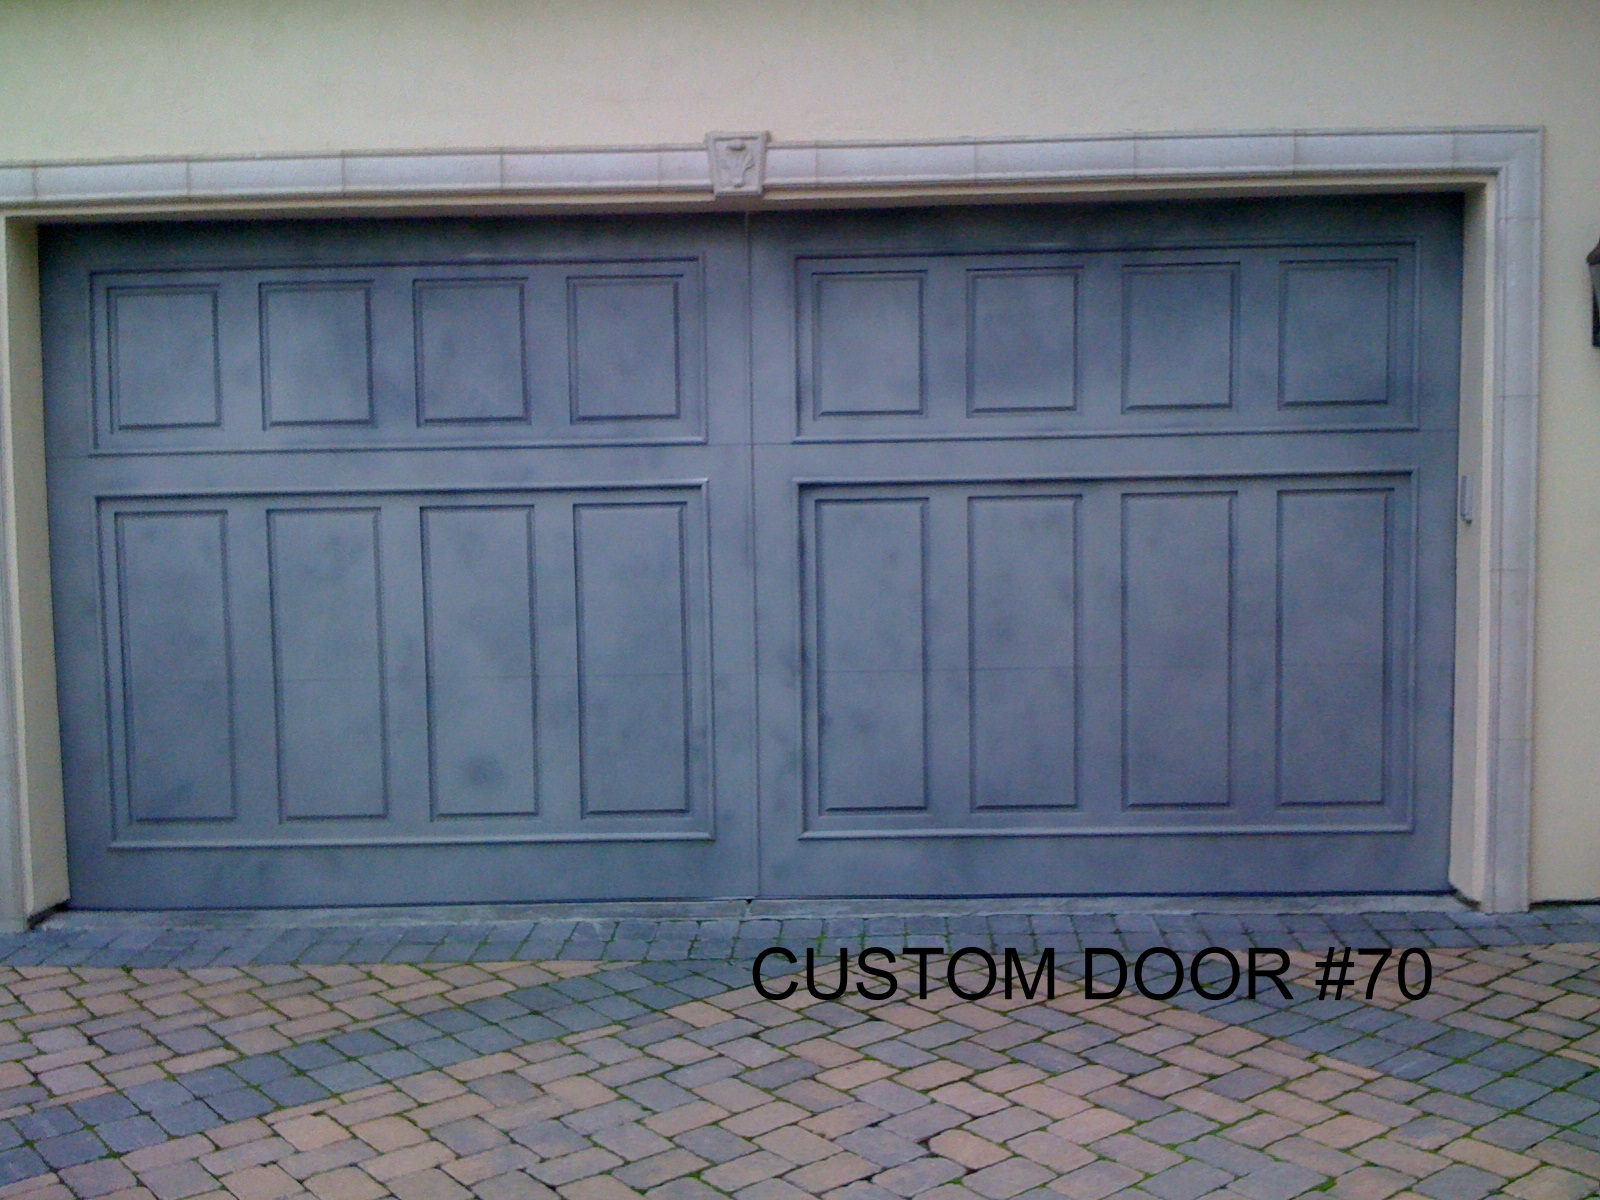 Enlarge Custom Door #70